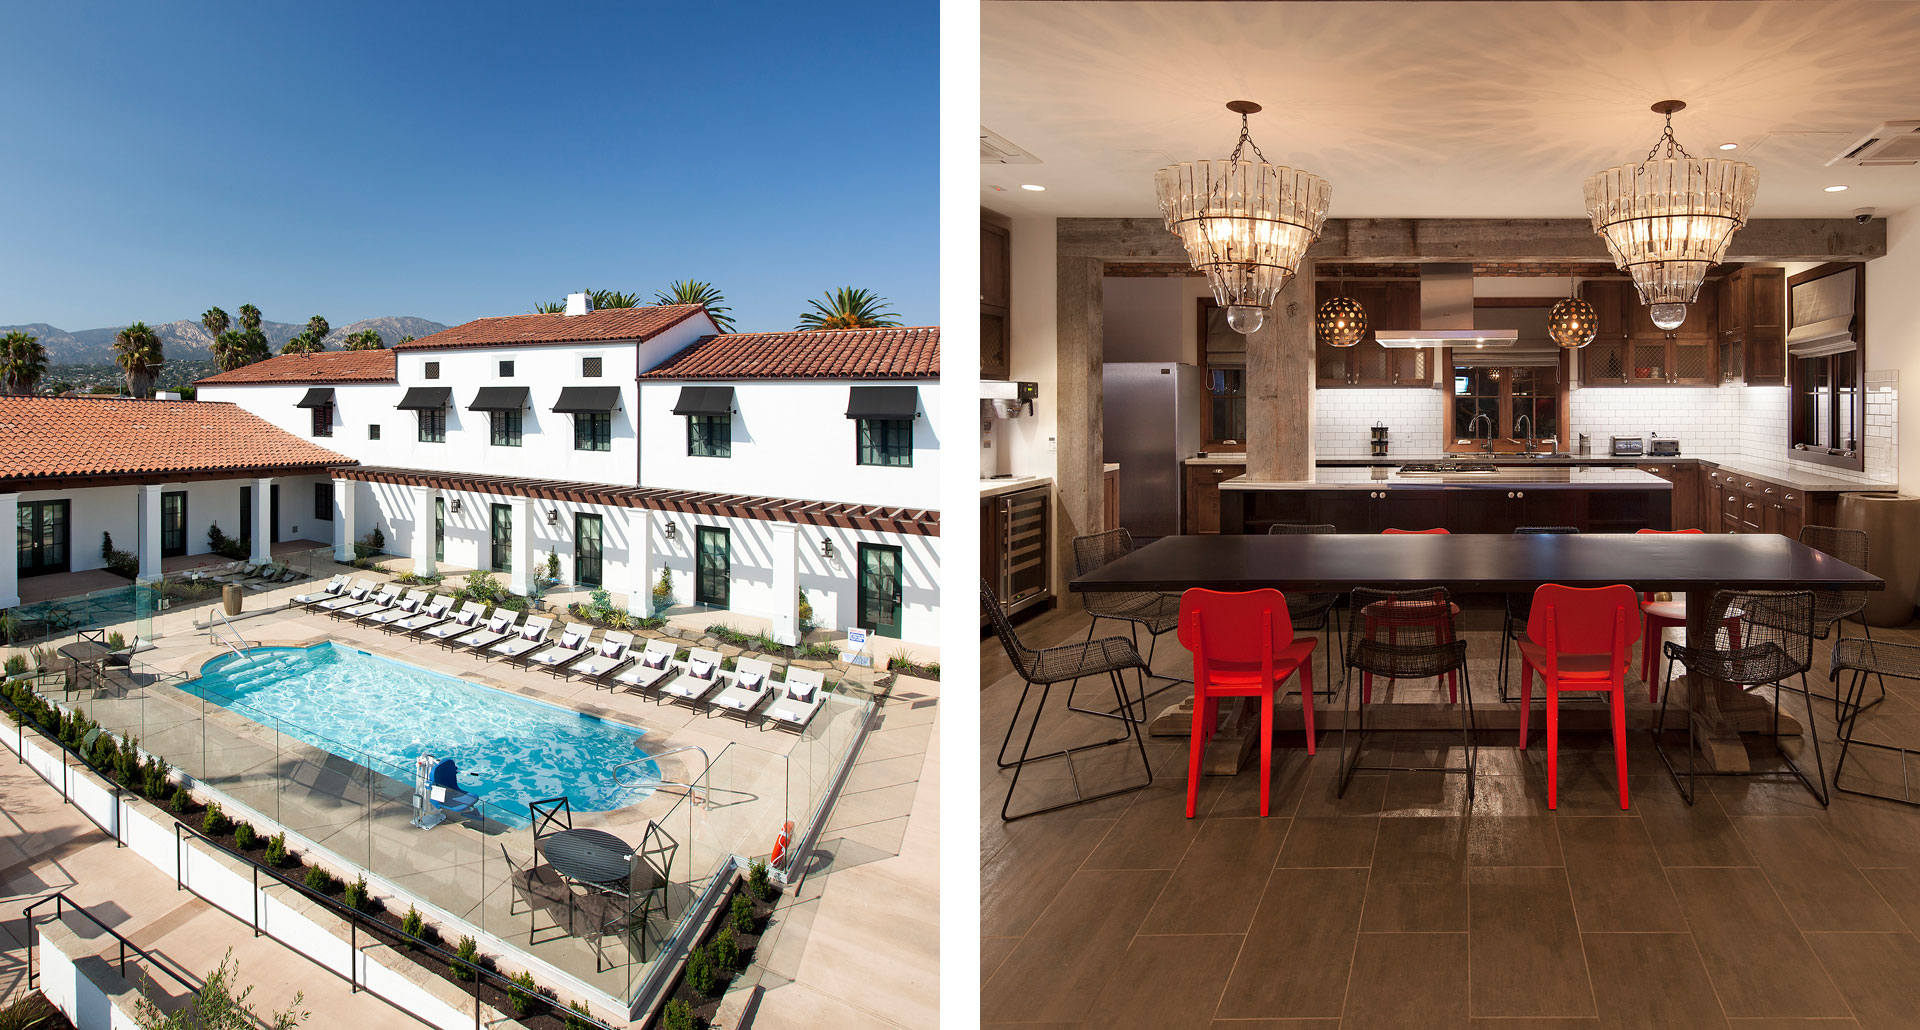 The Wayfarer - boutique hotel in Santa Barbara